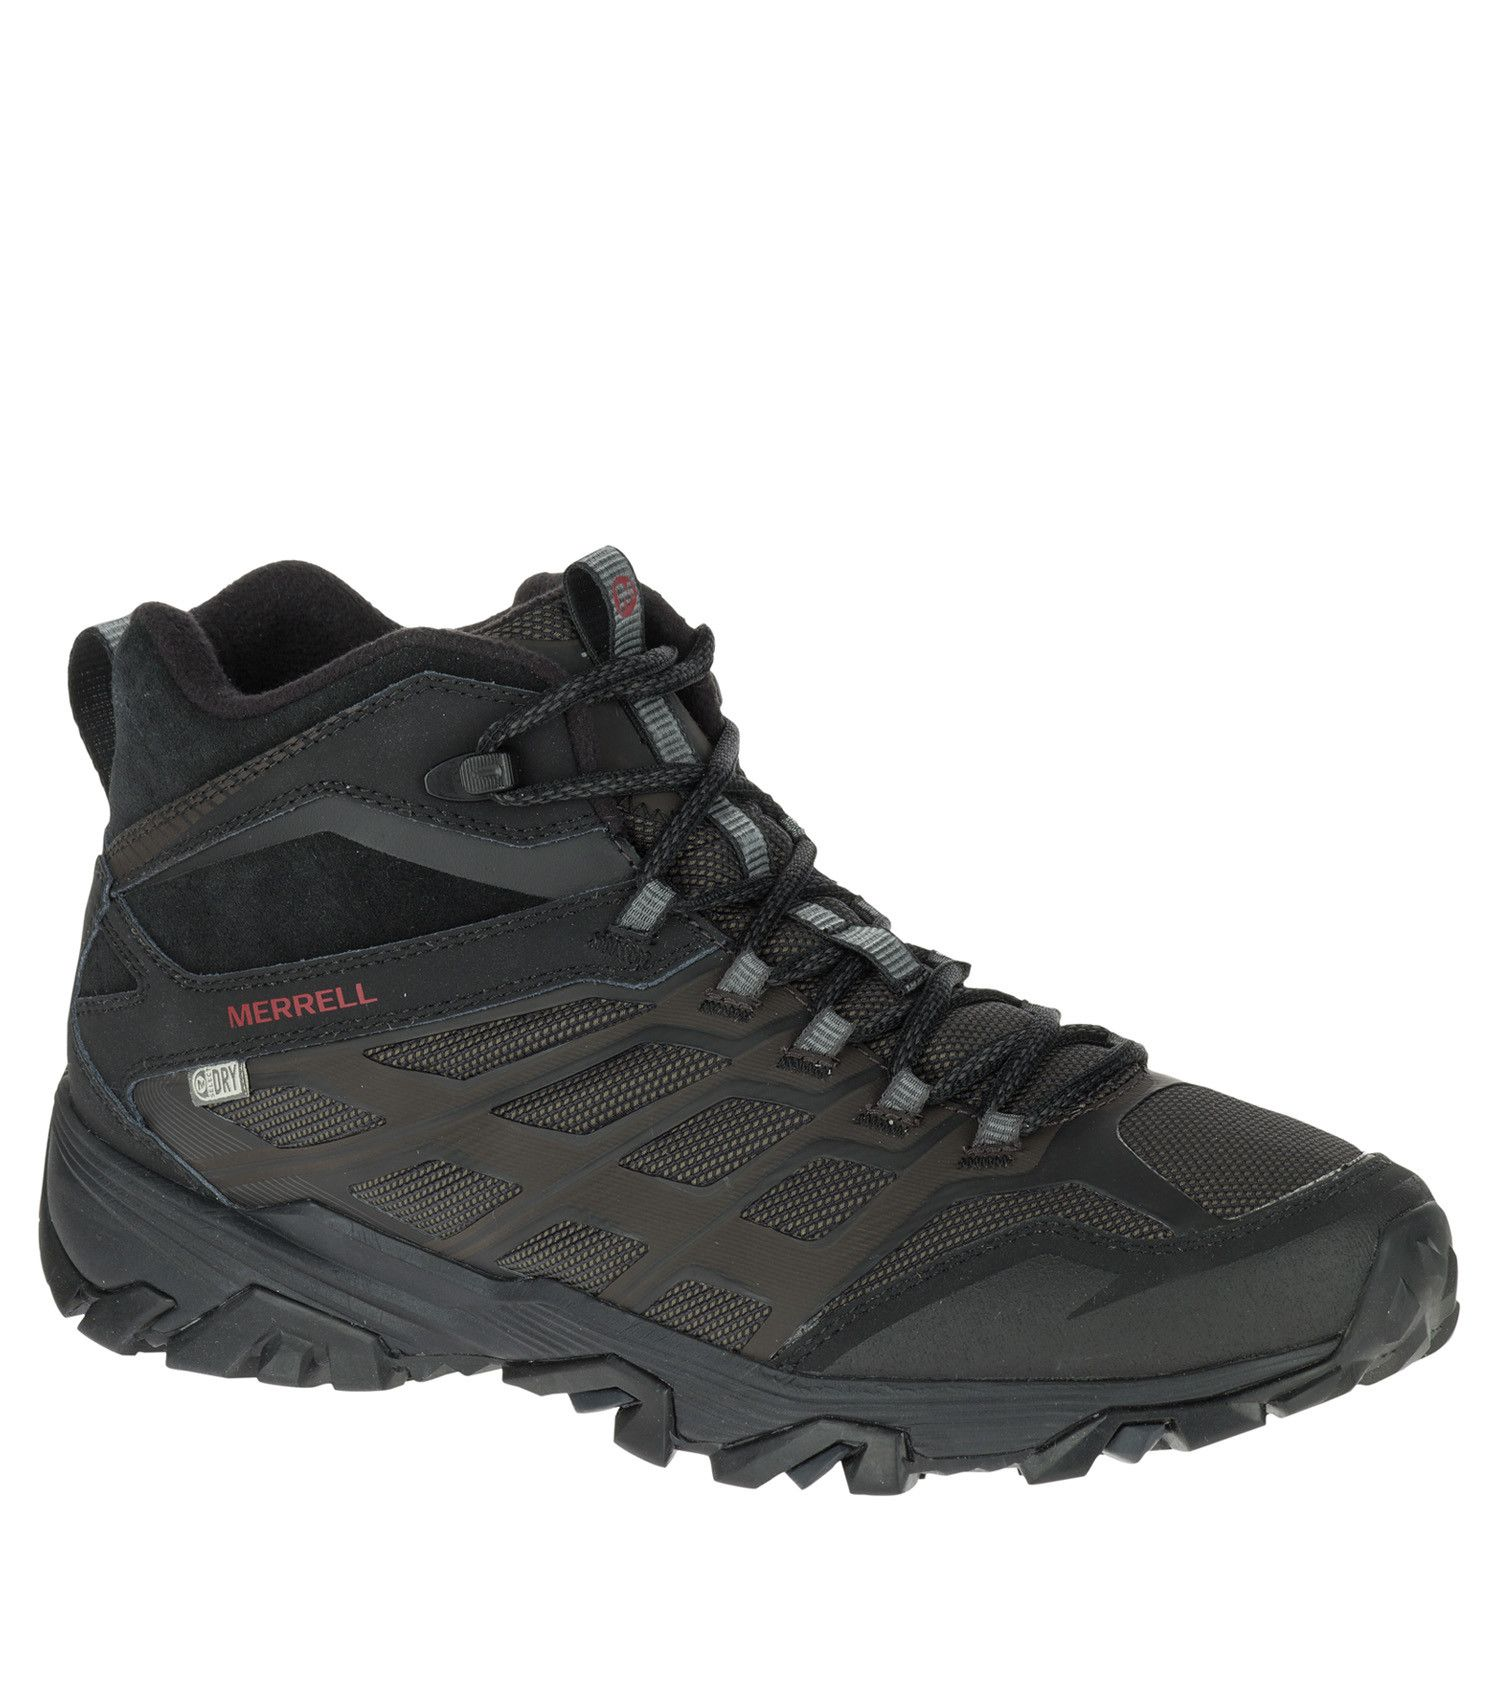 CHAUSSURES MOAB 2 GORE-TEX® MERRELL   Chaussures Homme sport   Pinterest    Homme sport, Chaussures hommes et Sports